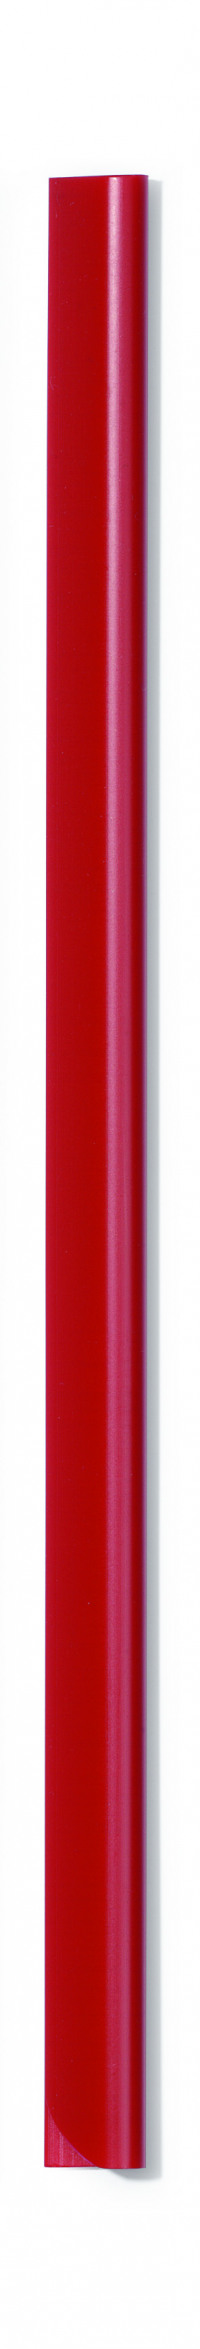 Durable A4 Red 6mm Spinebars (Pack of 100) 2901/03